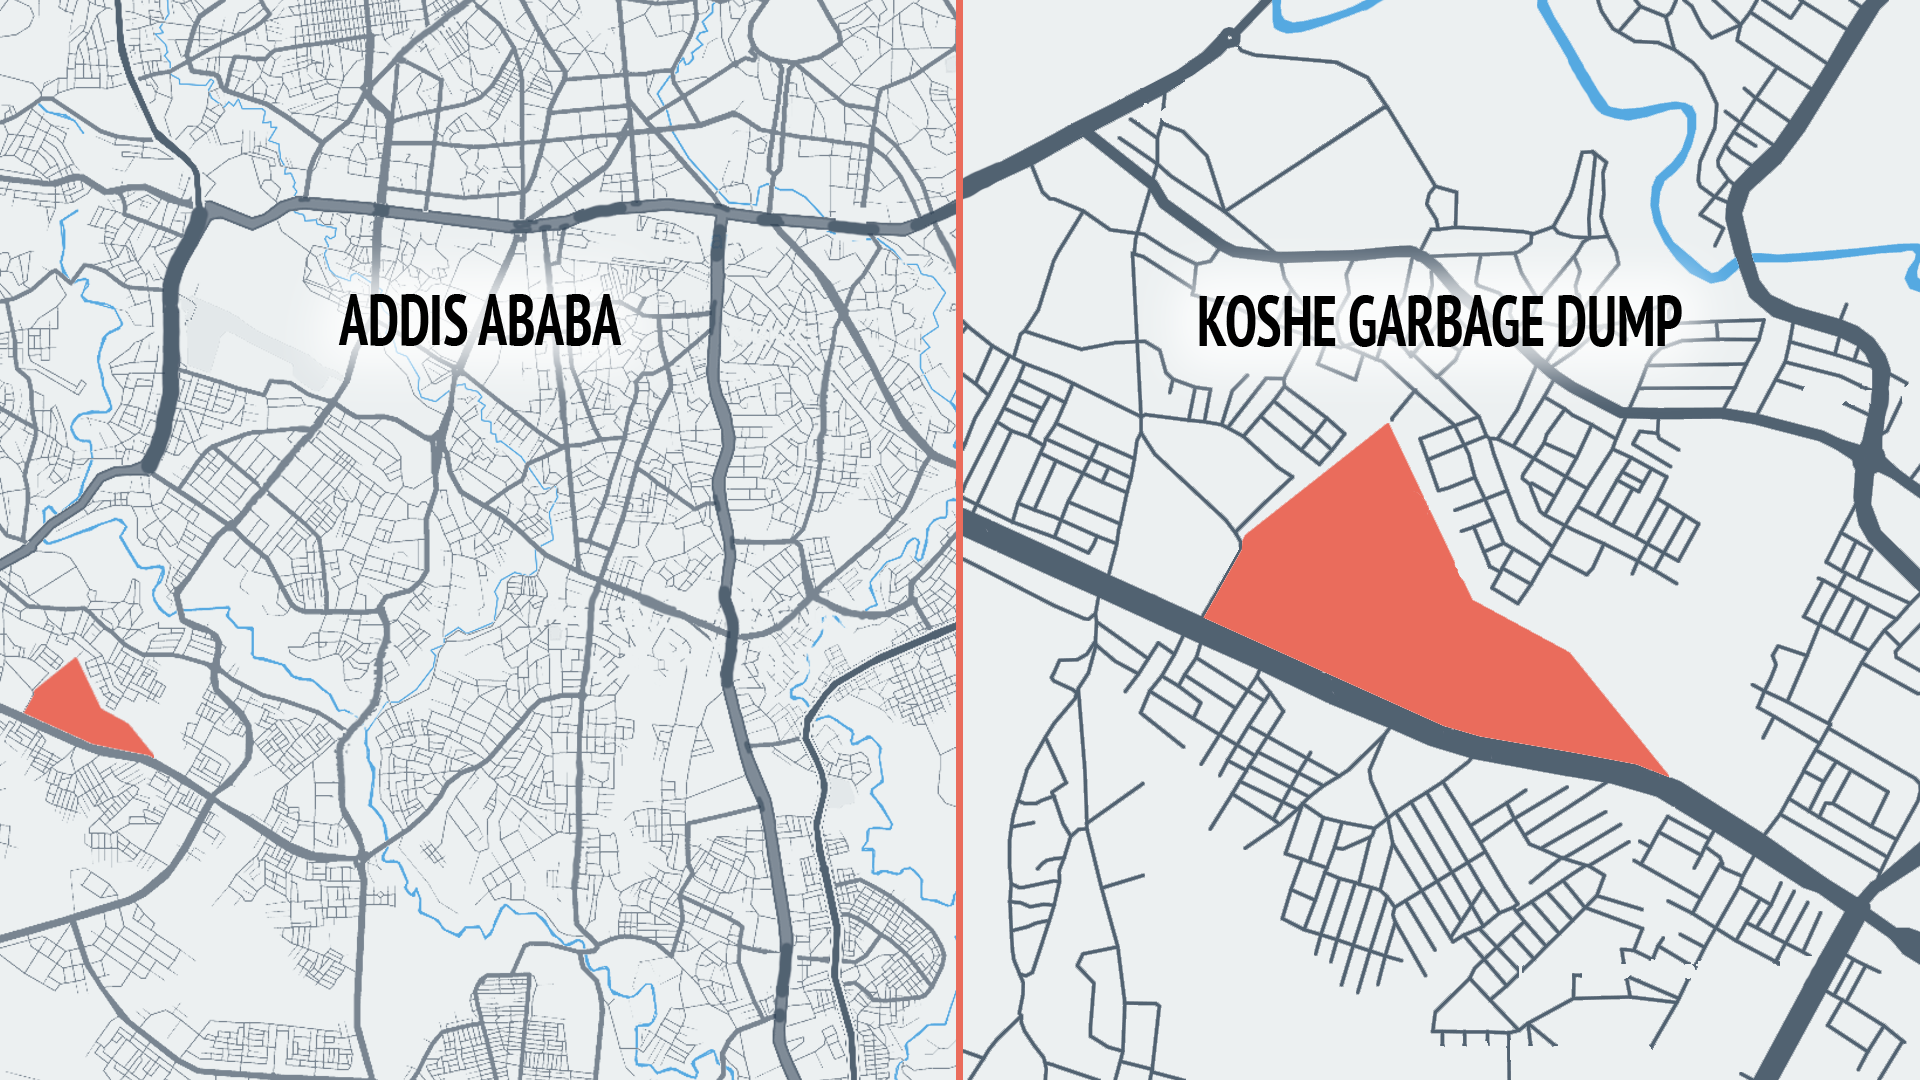 Map of Addis Ababa, Ethiopia and location of Koshe garbage dump